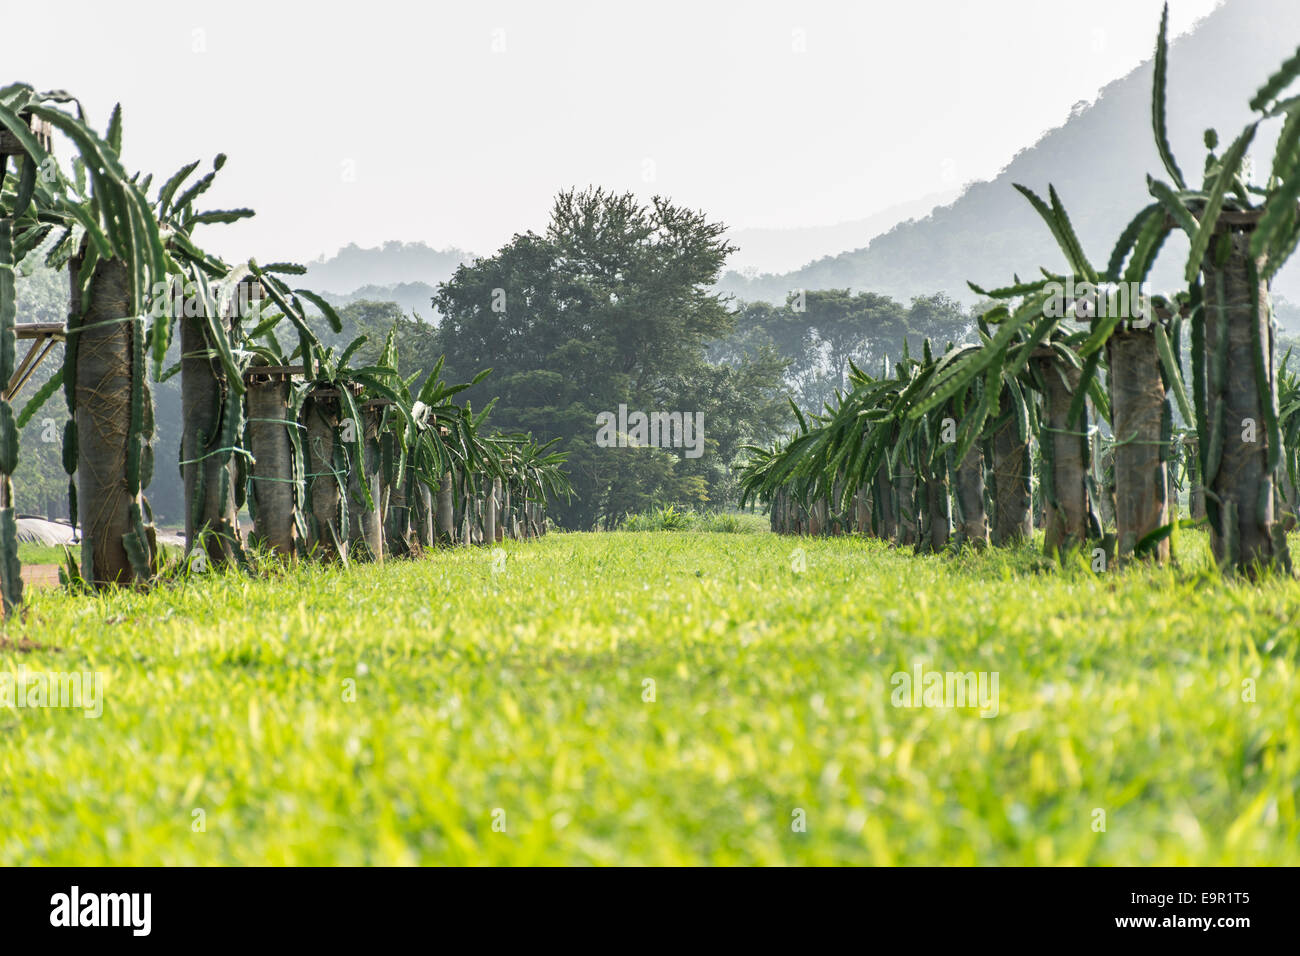 a field with fruit bushes Hylocereus on a background of sky - Stock Image